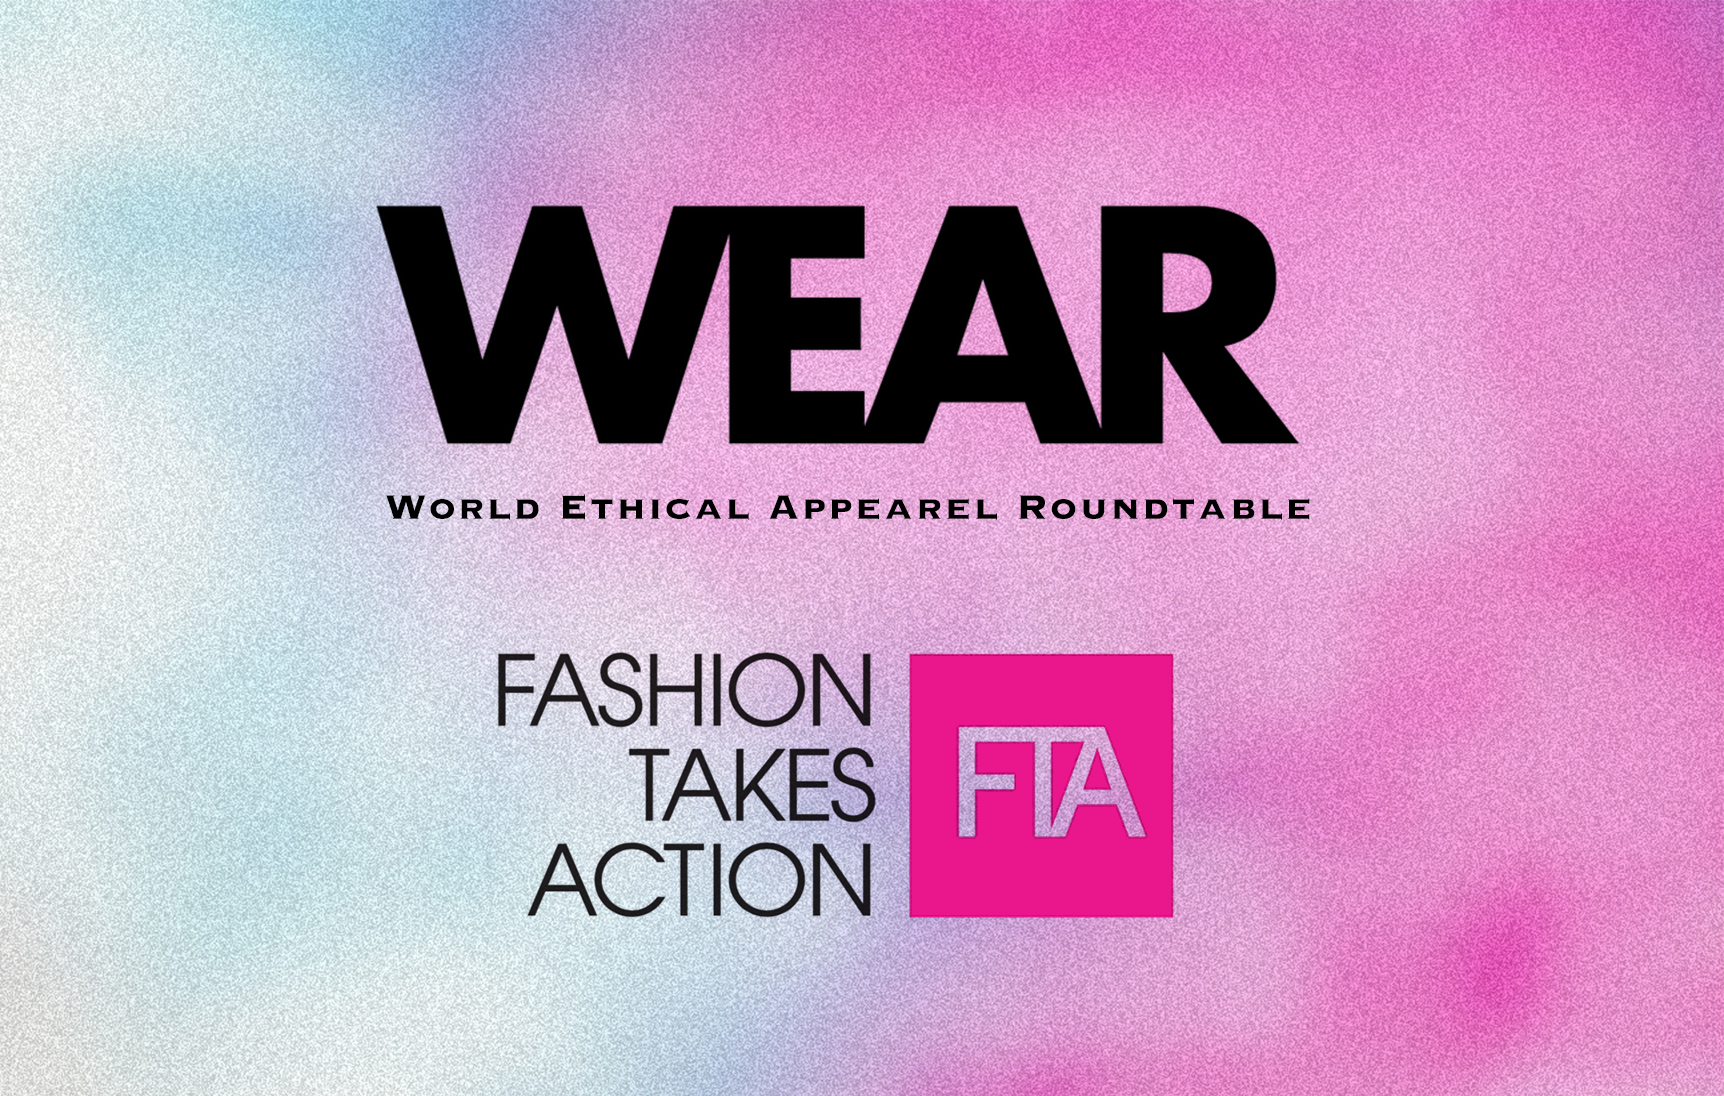 WEAR 2018  By shifting to more sustainable and regenerative business models, the fashion industry has the power to positively impact the environment and millions of people worldwide. Fashion Takes Action hosts the 5th annual World Ethical Apparel Roundtable, bringing thought leaders together to discuss ideas and innovations to move fashion forward.